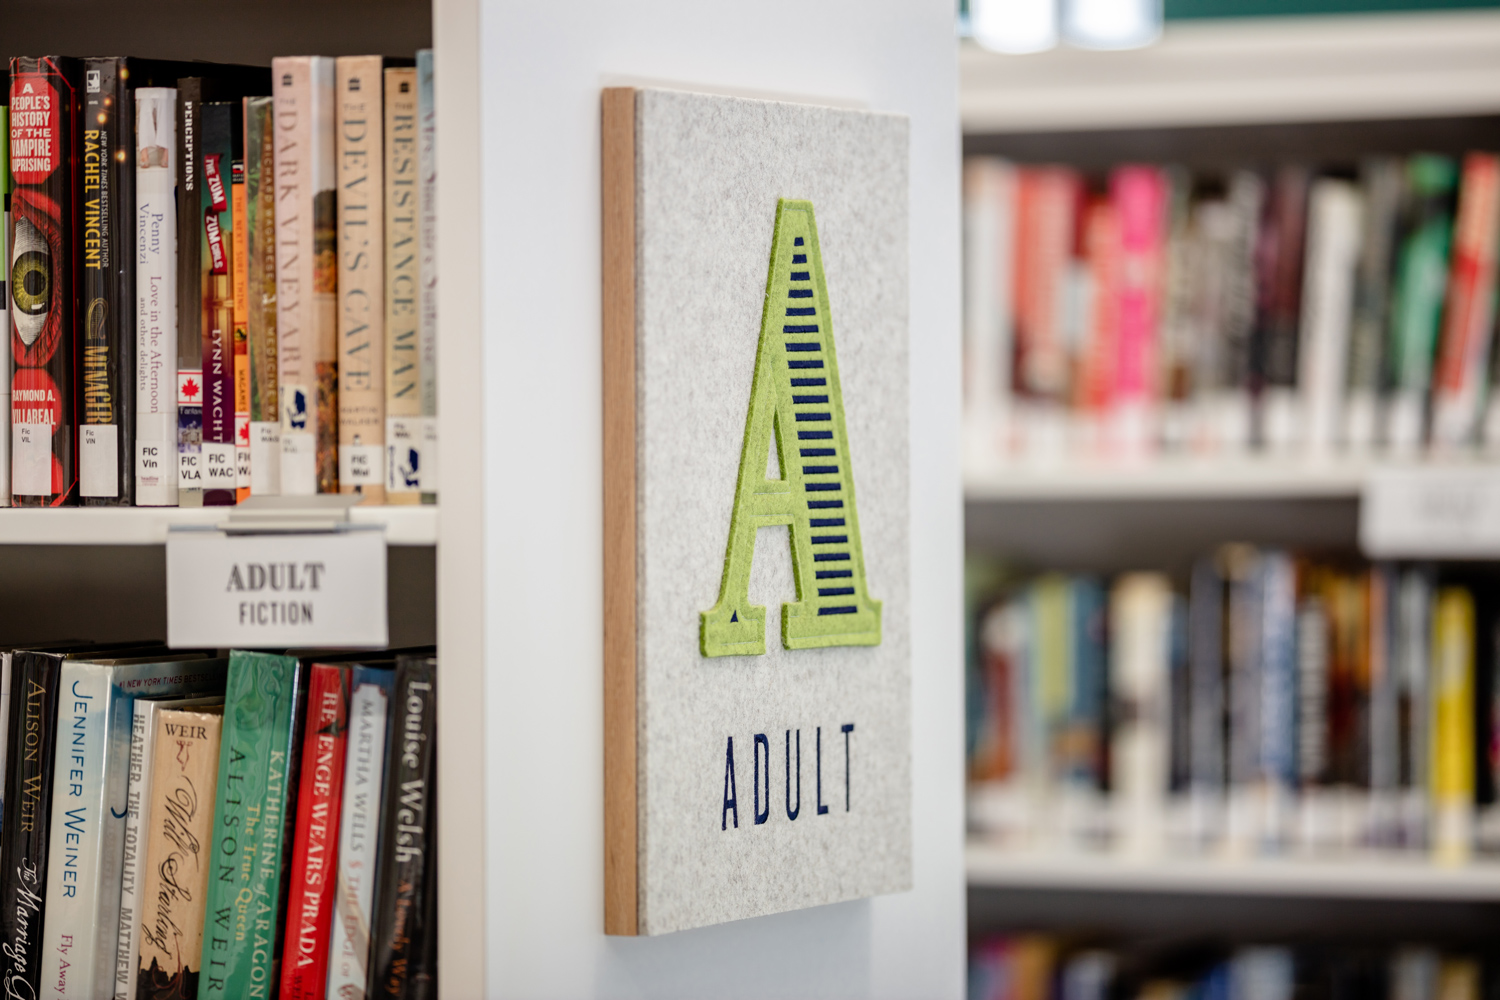 Signage---Lunenburg-Library---credit-Julian-Parkinson---28AUG2018_06A0636-web.jpg